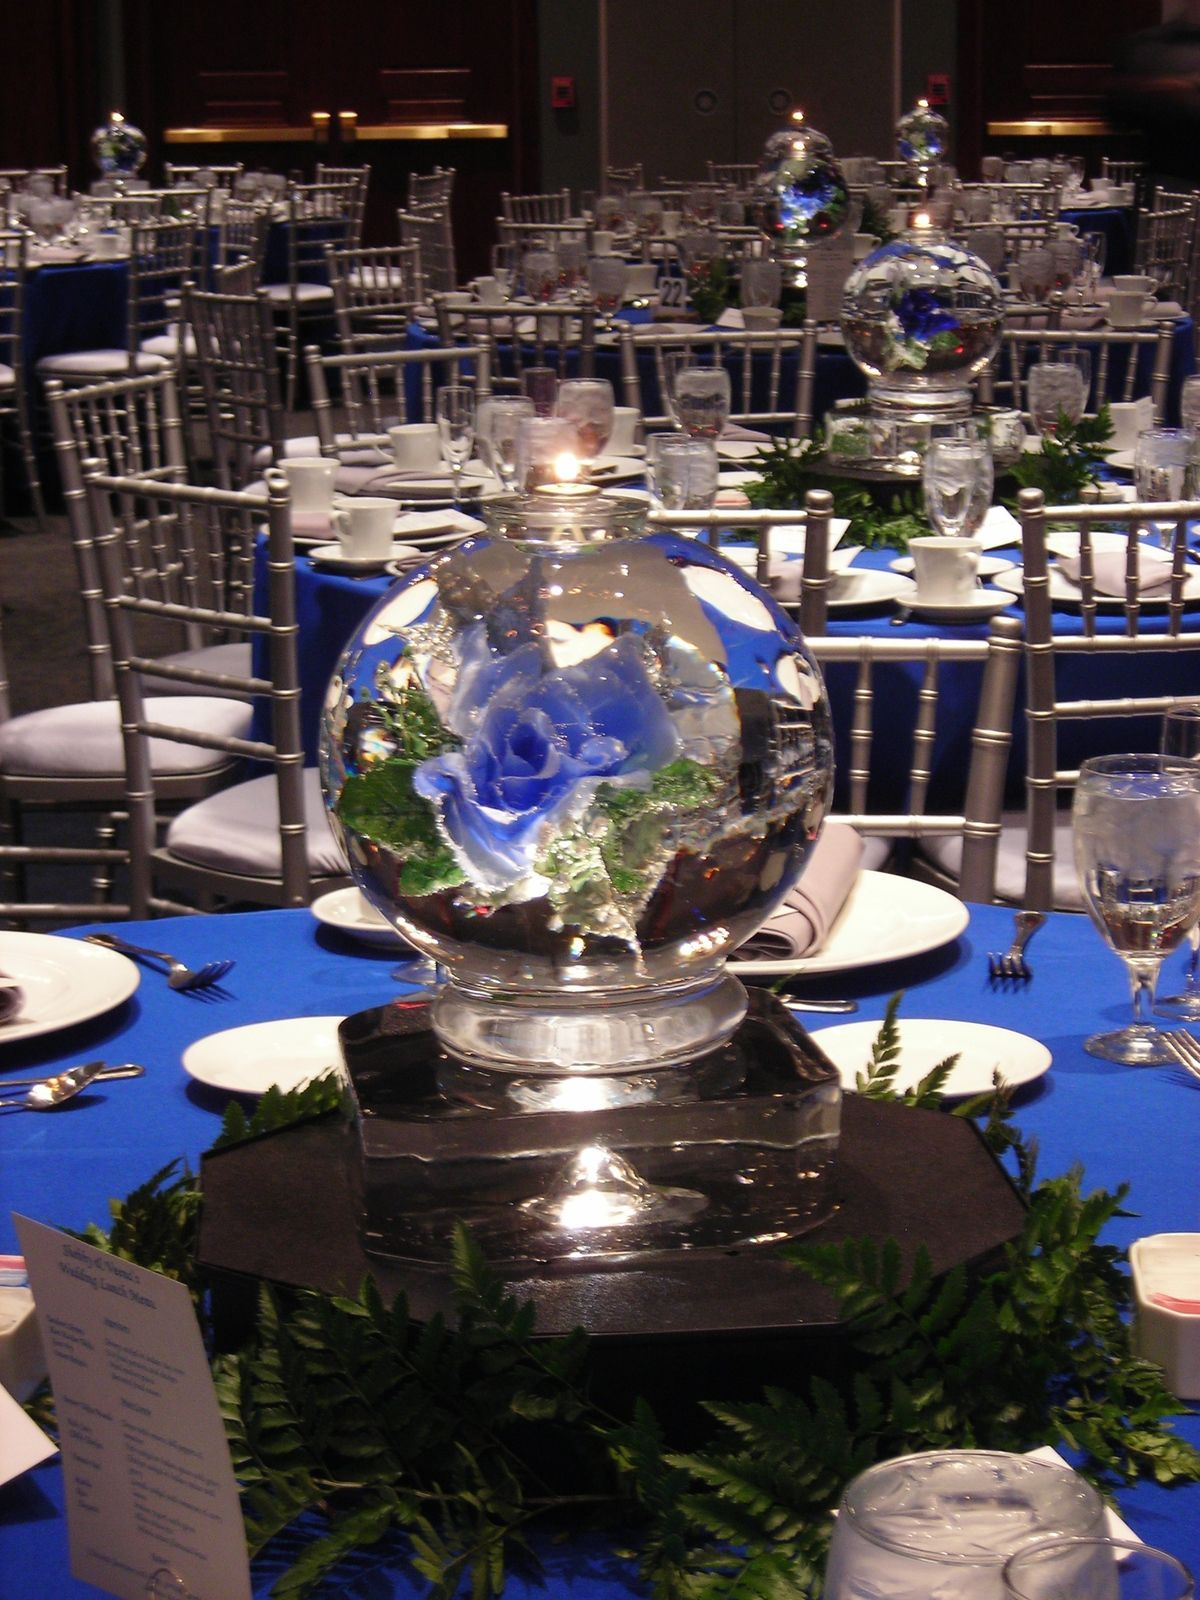 Sphere centerpiece w blue flowers ice sculpture table